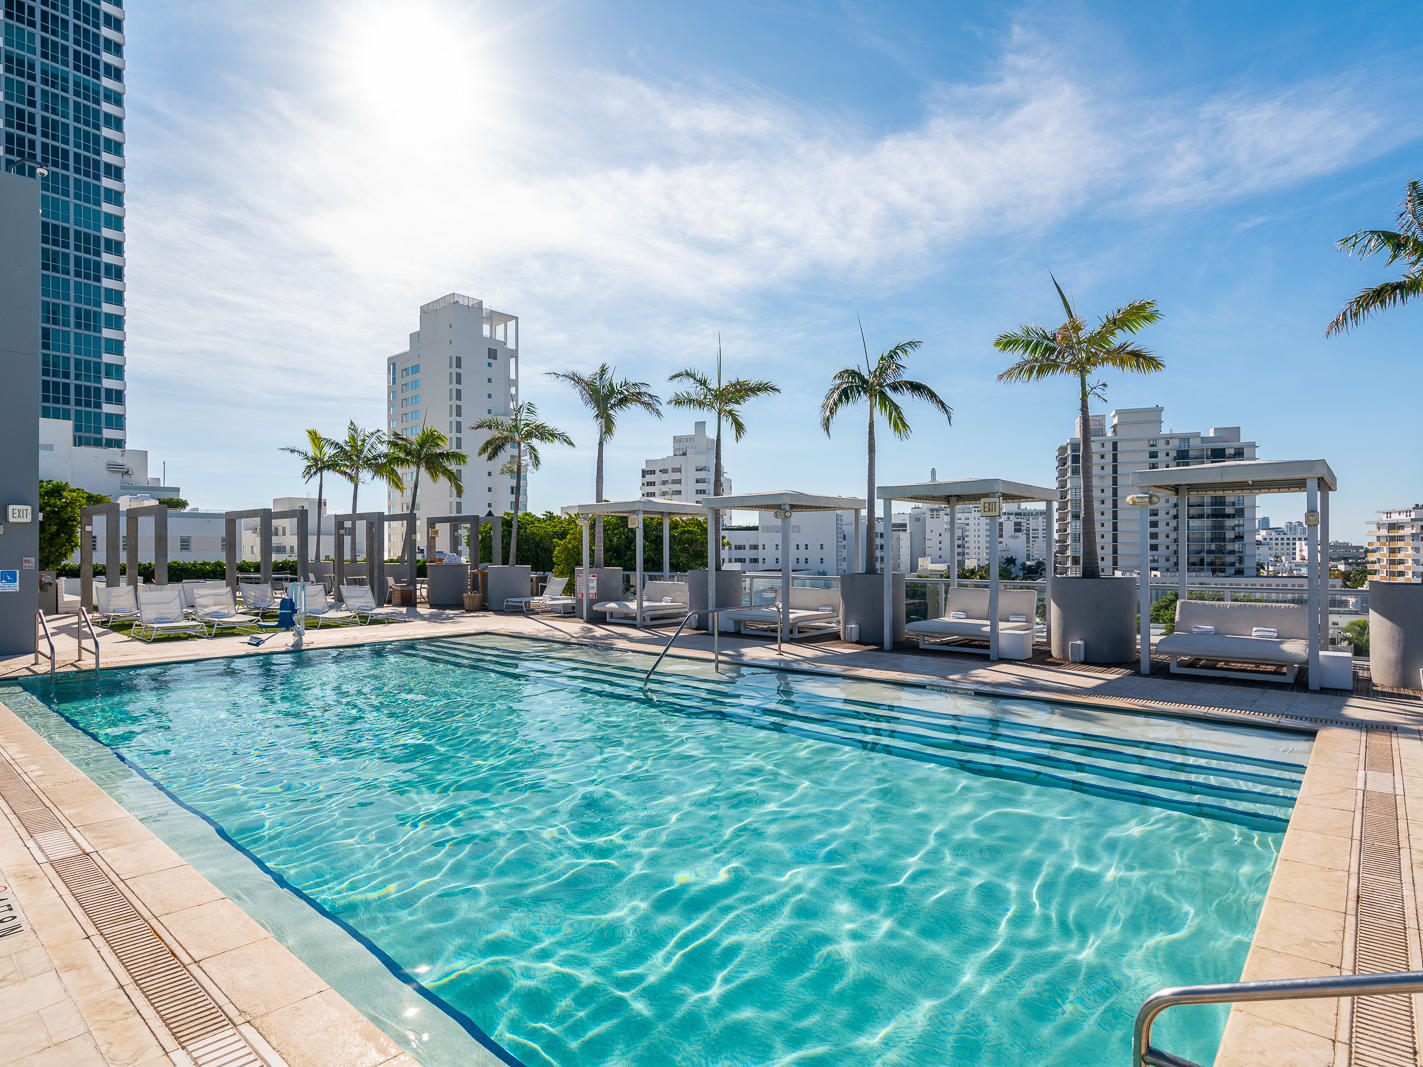 rooftop pool with cabanas and palm trees